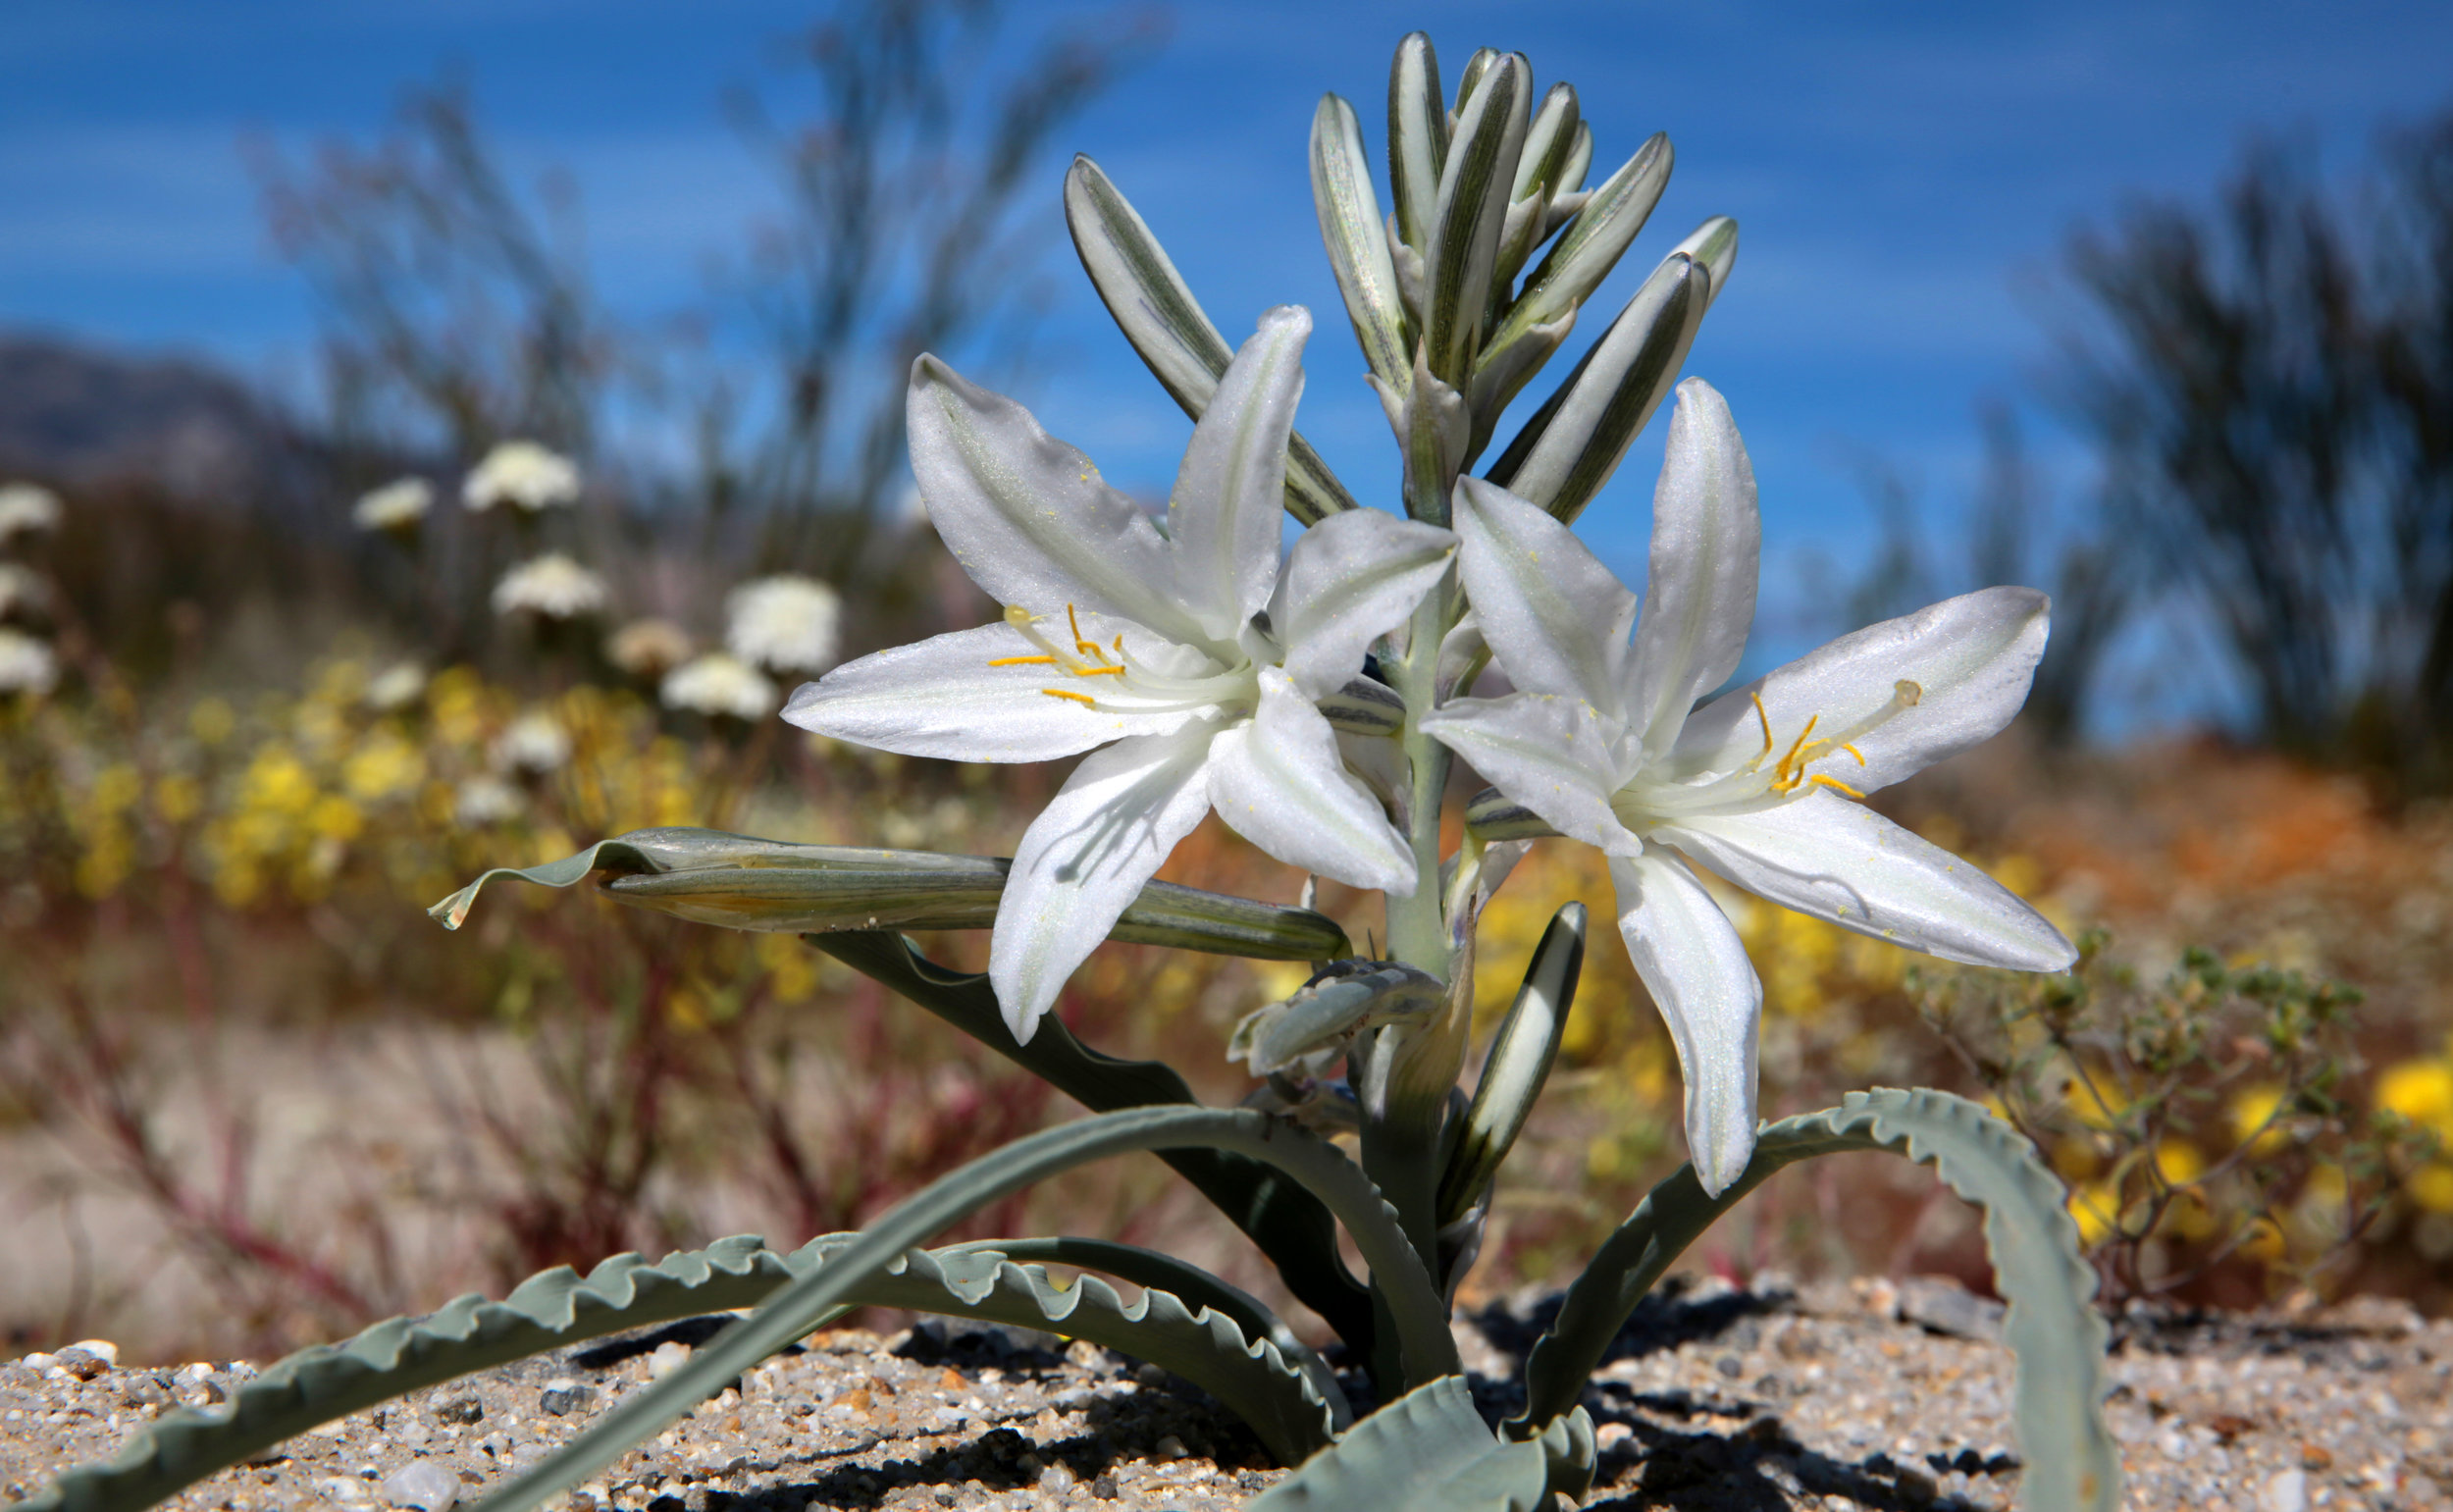 Desert or Ajo lily (Hesperocallis undulata) is both beautiful and wonderfully fragrant. I spotted this one growing in the Coyote Canyon area of Anza-Borrego Desert State Park in Borrego Springs.